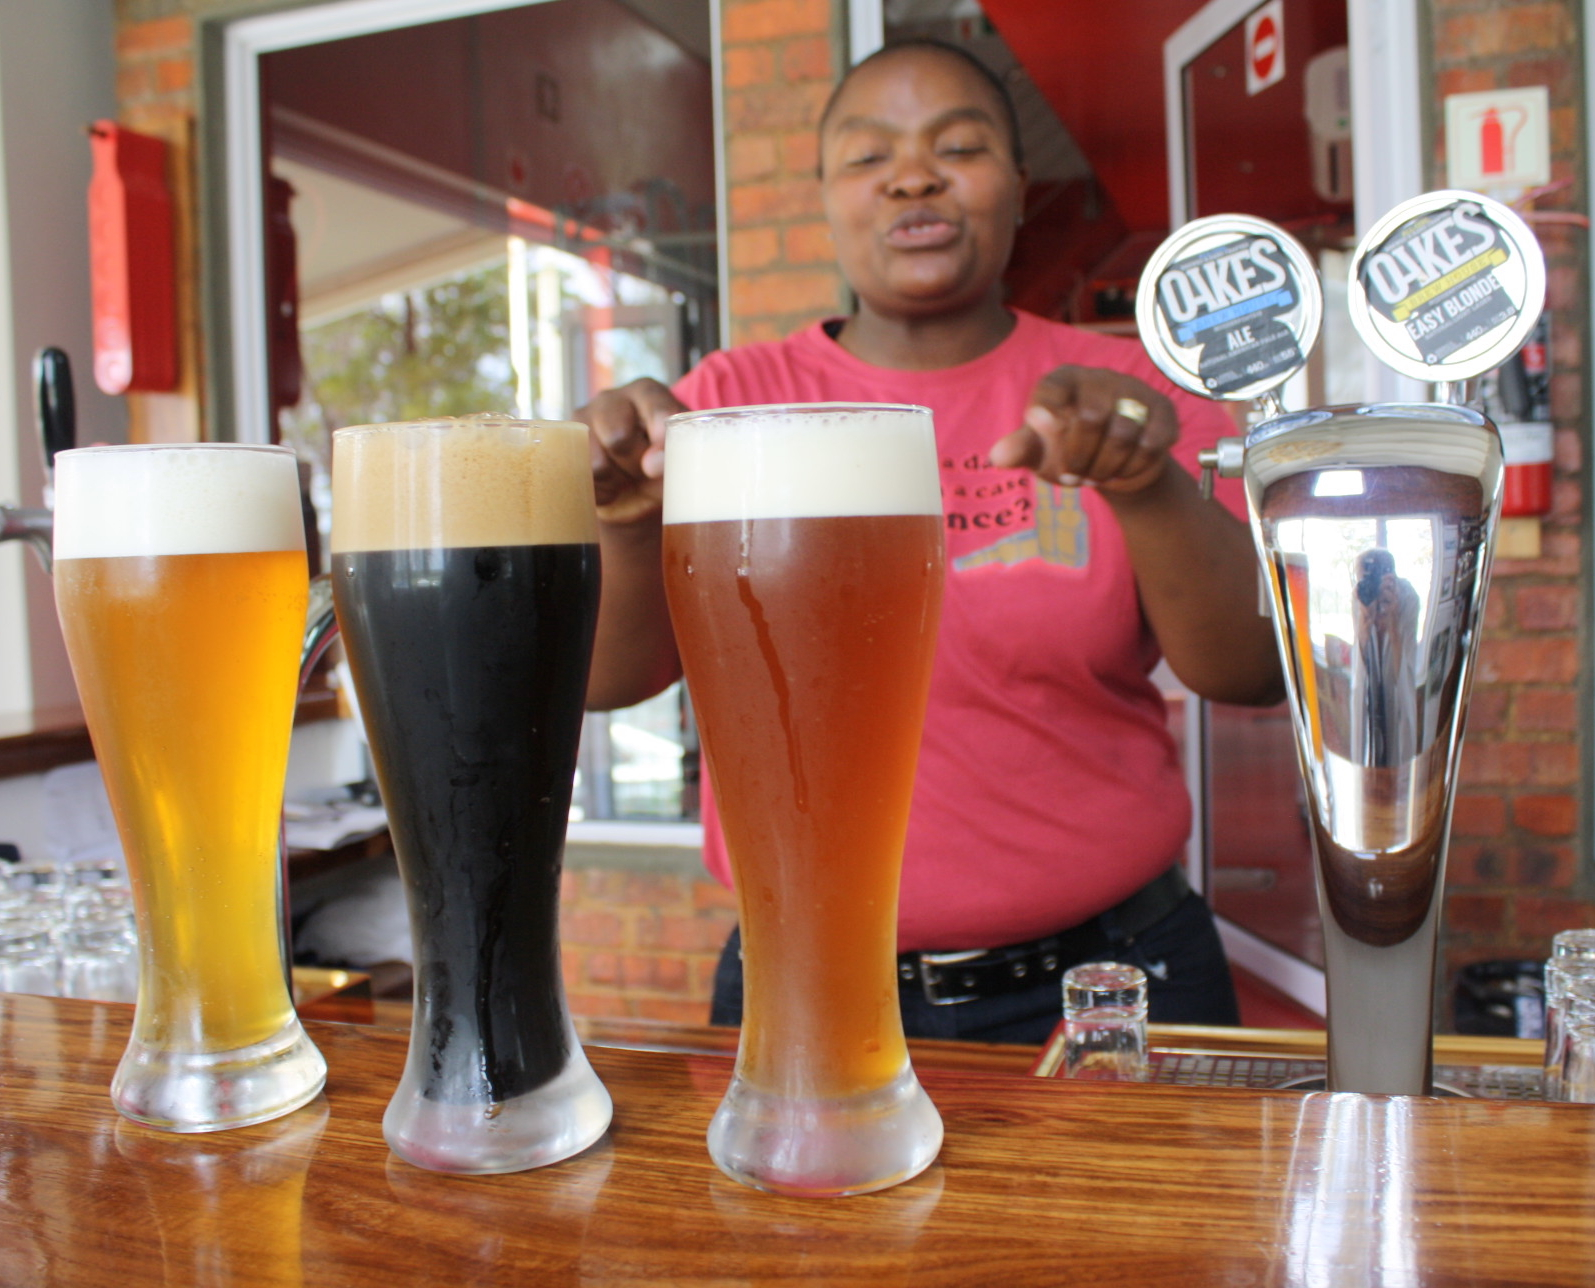 South Africa's 'all-girl' Brewery Wins Fans photo